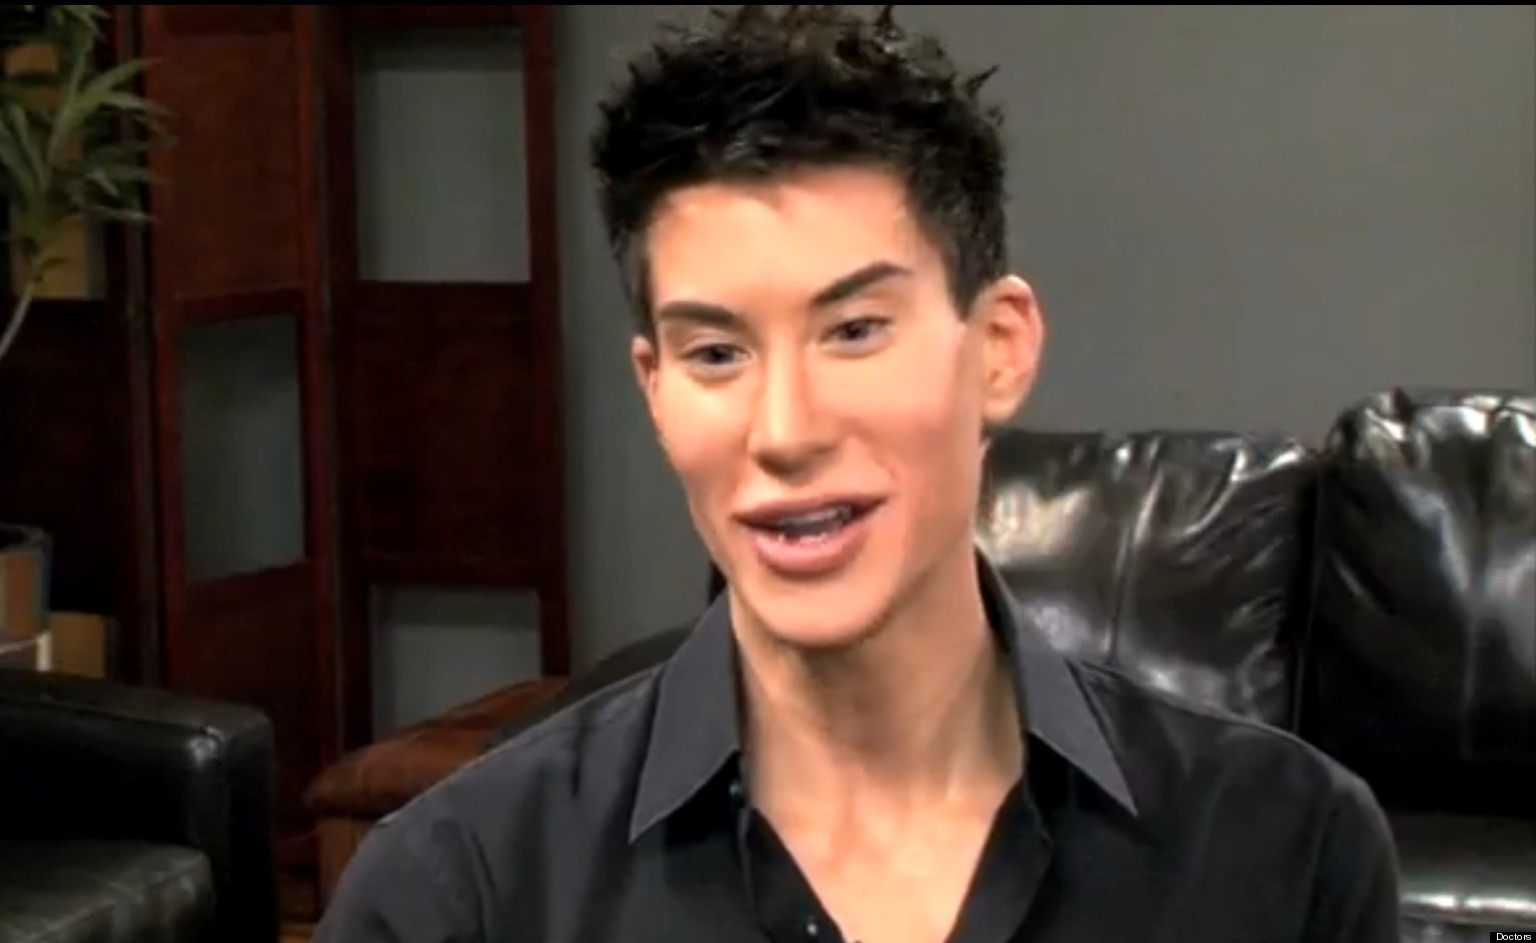 Justin - The Human Ken Doll; Plastic Surgery and Artistry